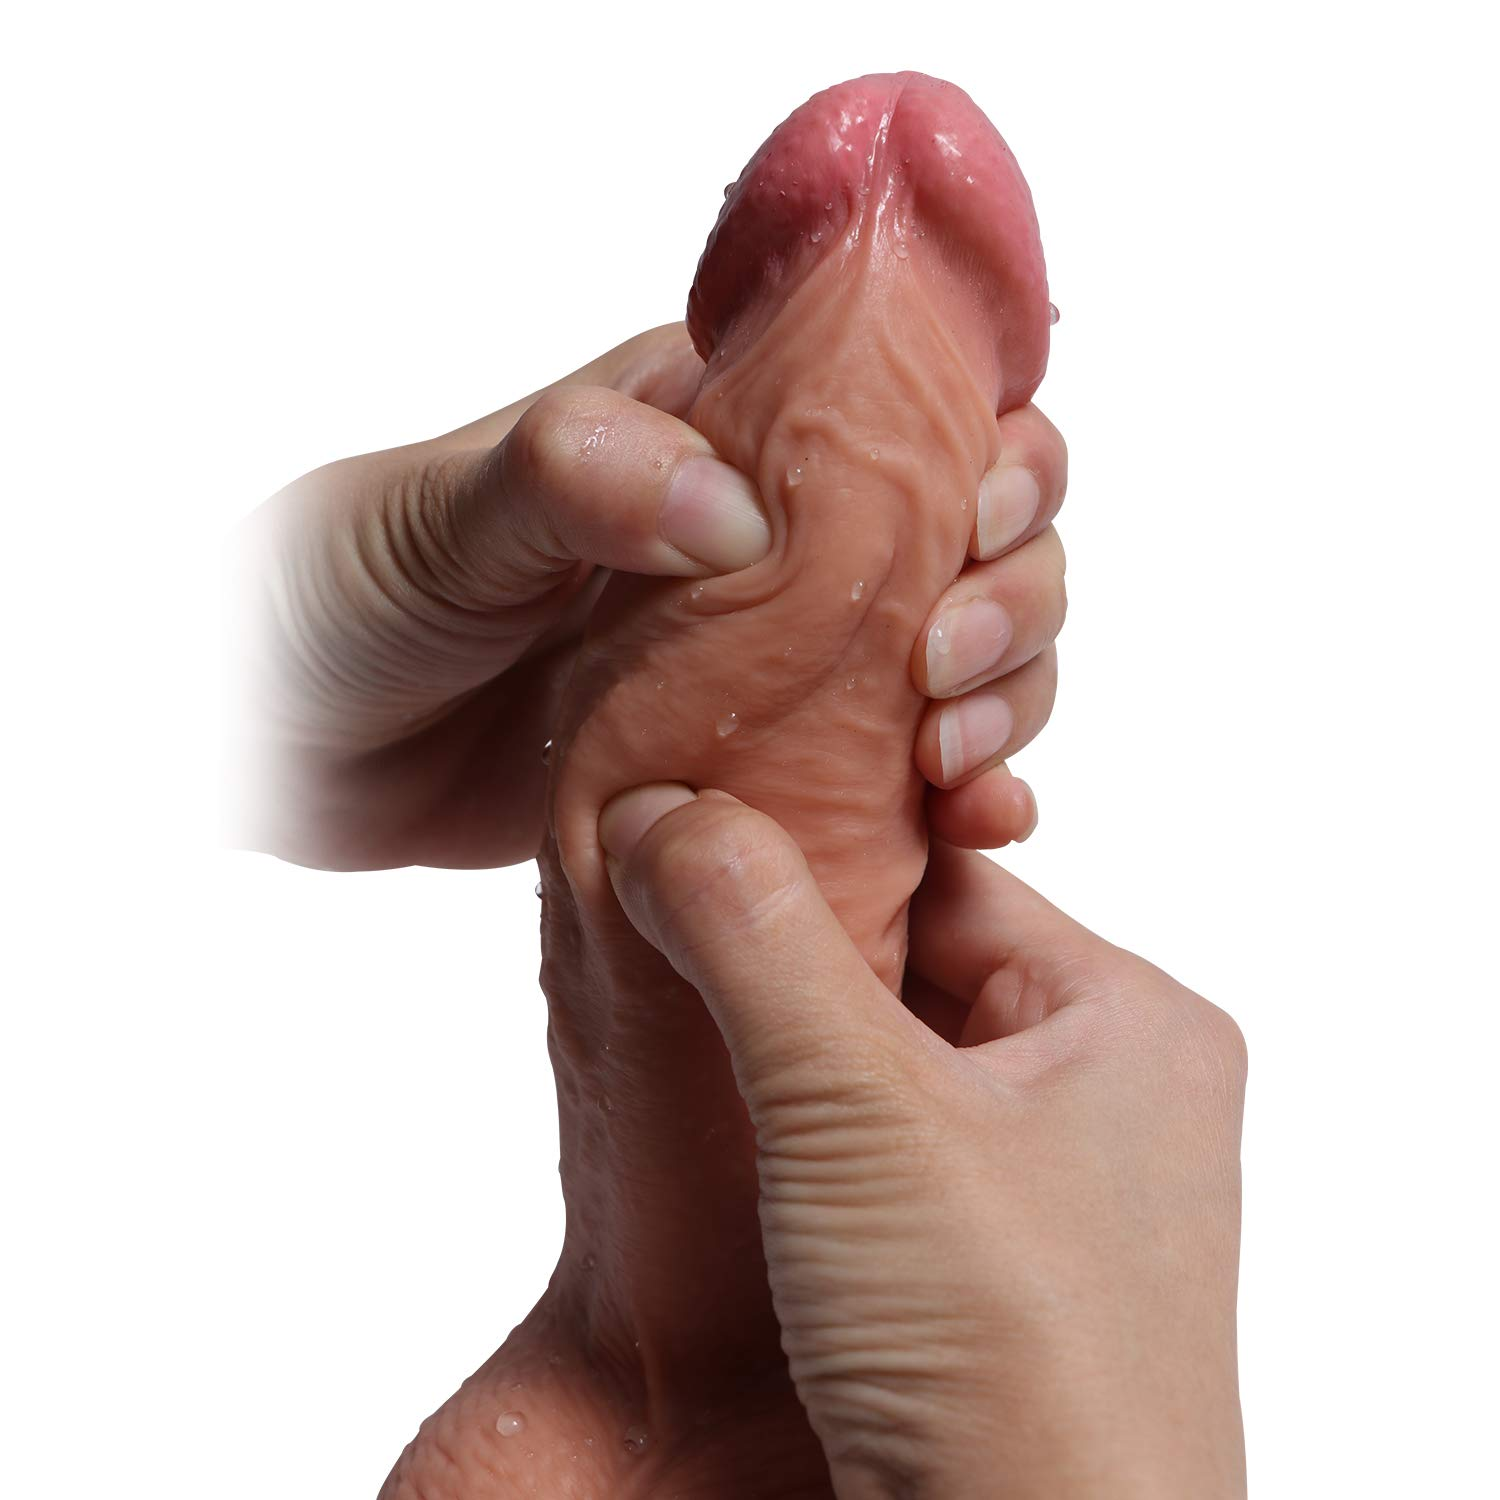 Amazon.com: Hyper Realistic Dildo, Anfei Slightly Bendable 9 Inch G-Spot  Premium liquid Silicone Penis Dong with Suction Cup, Sex Toy for Female ...